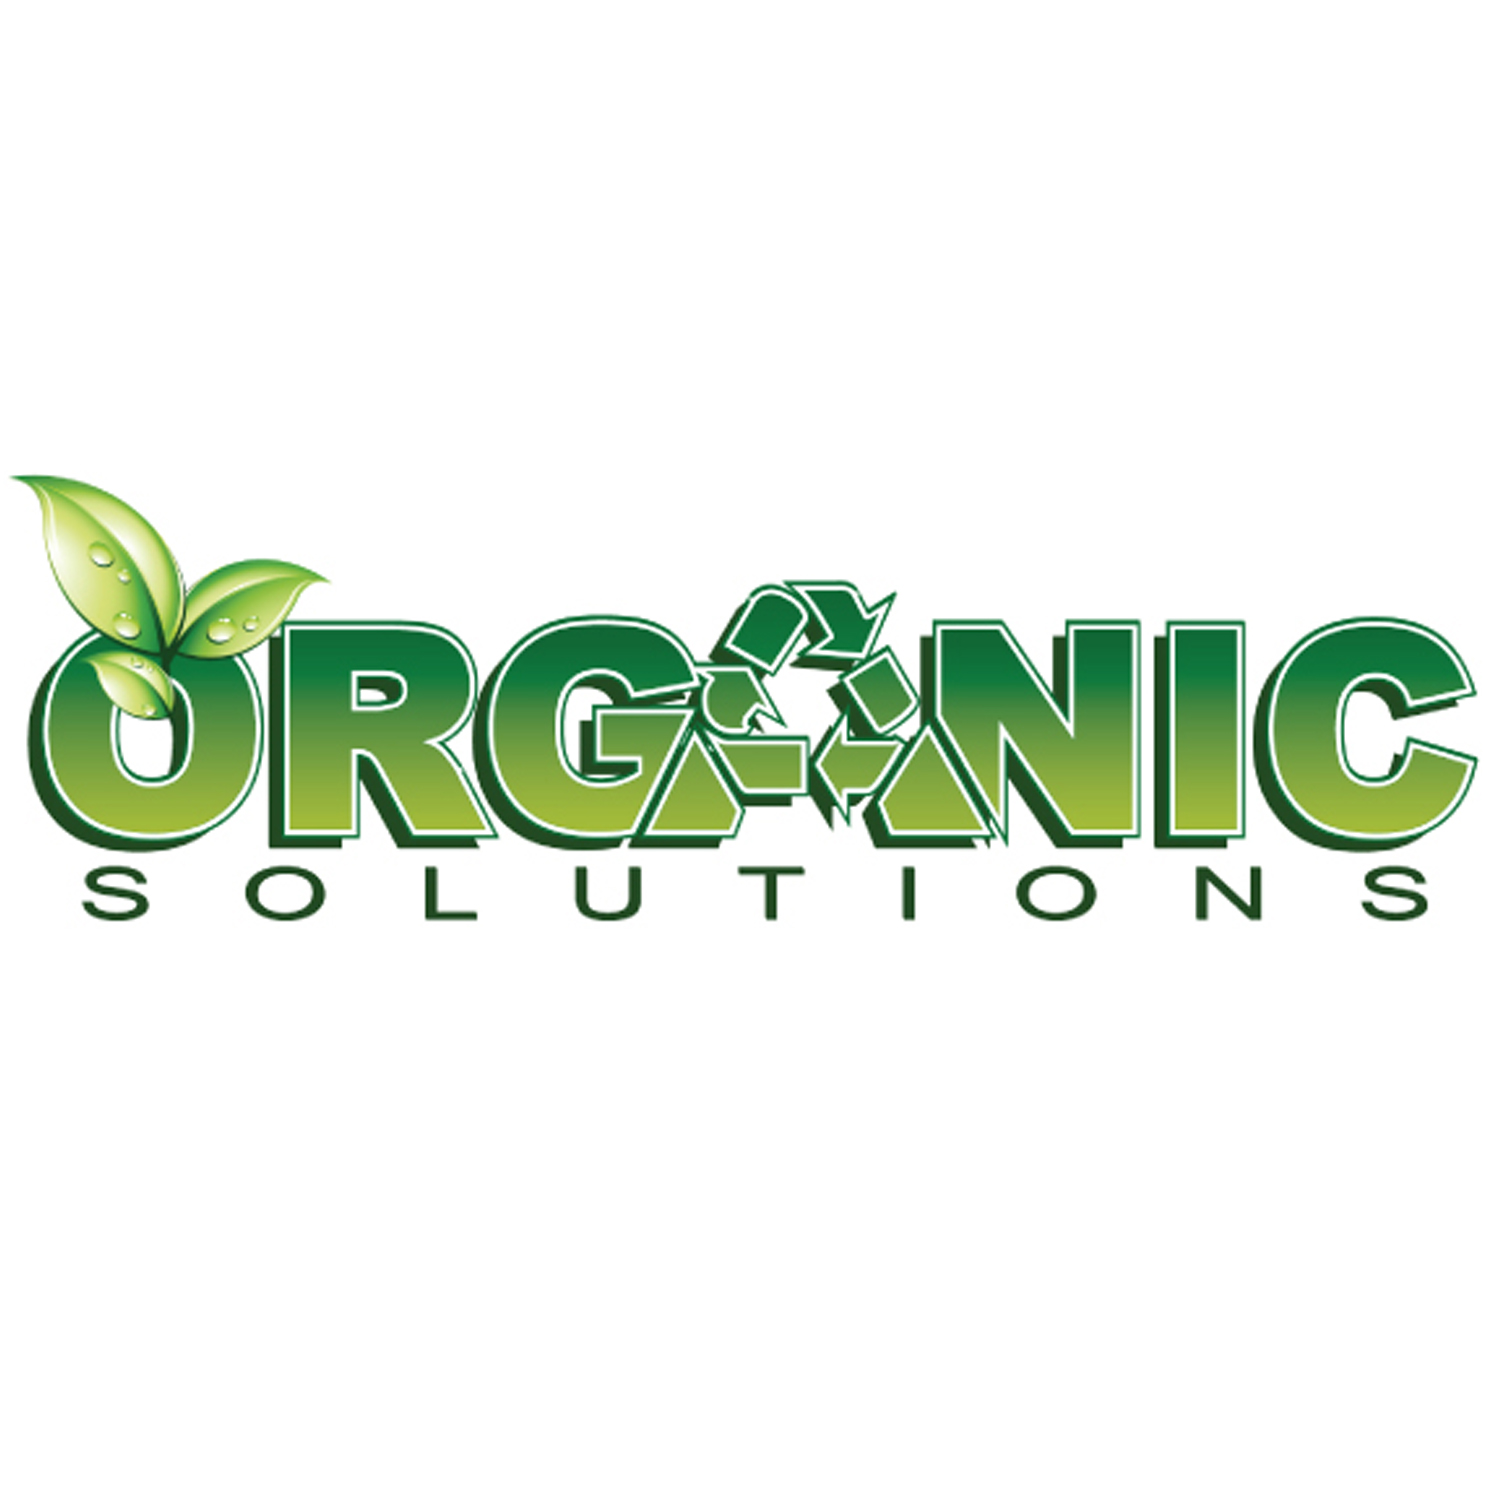 Organic Solutions - Organic Solutions was designed to help companies complete their sustainability loop in compliance with mandated regulations.